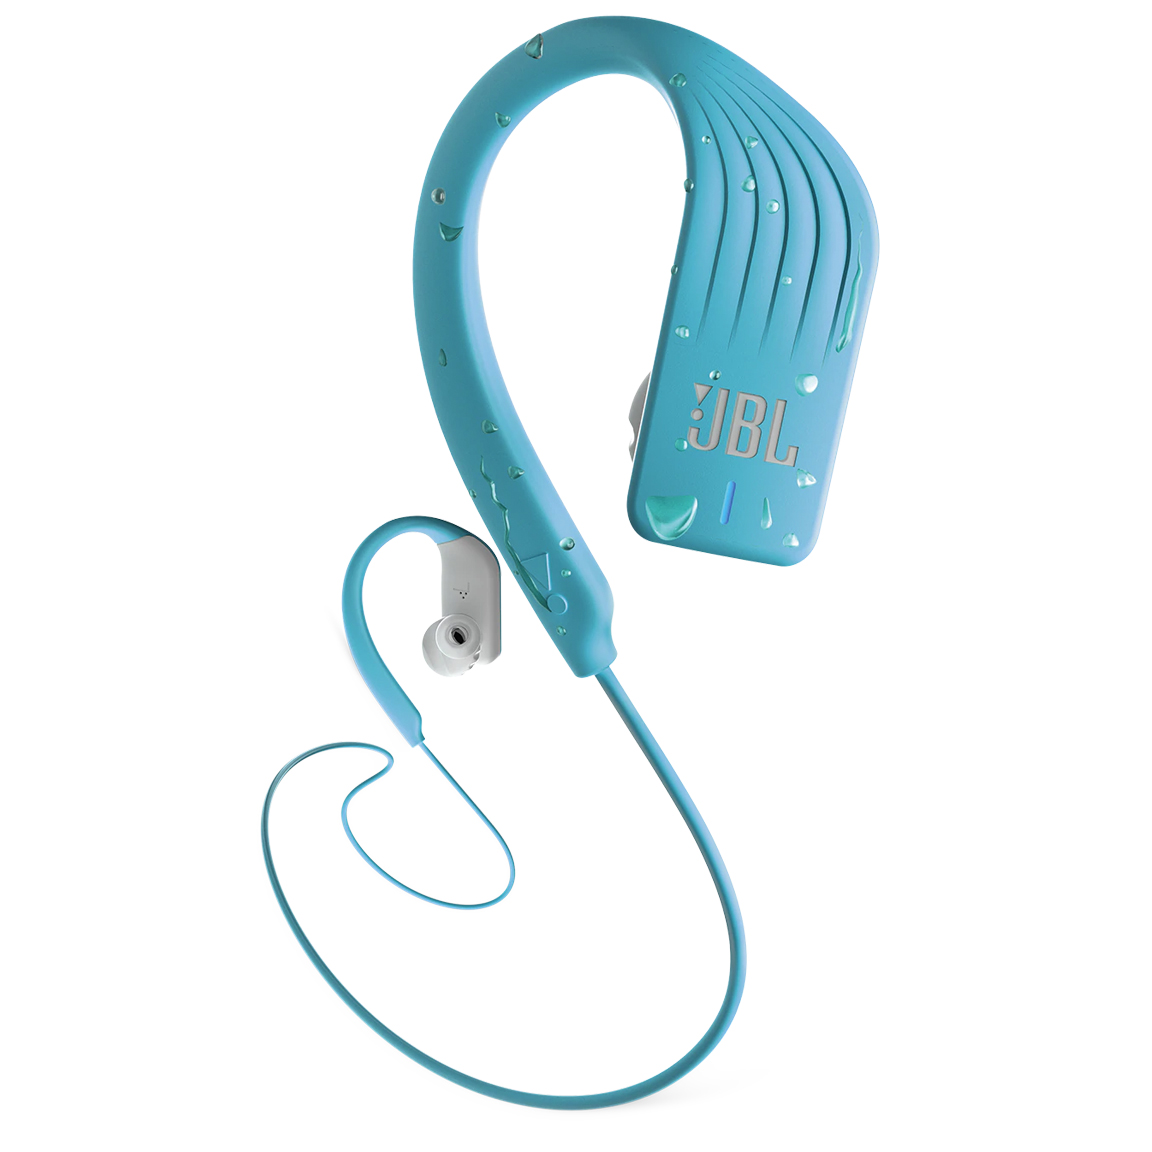 Image For JBL Endurance Sprint<br>Earbuds<br>Teal